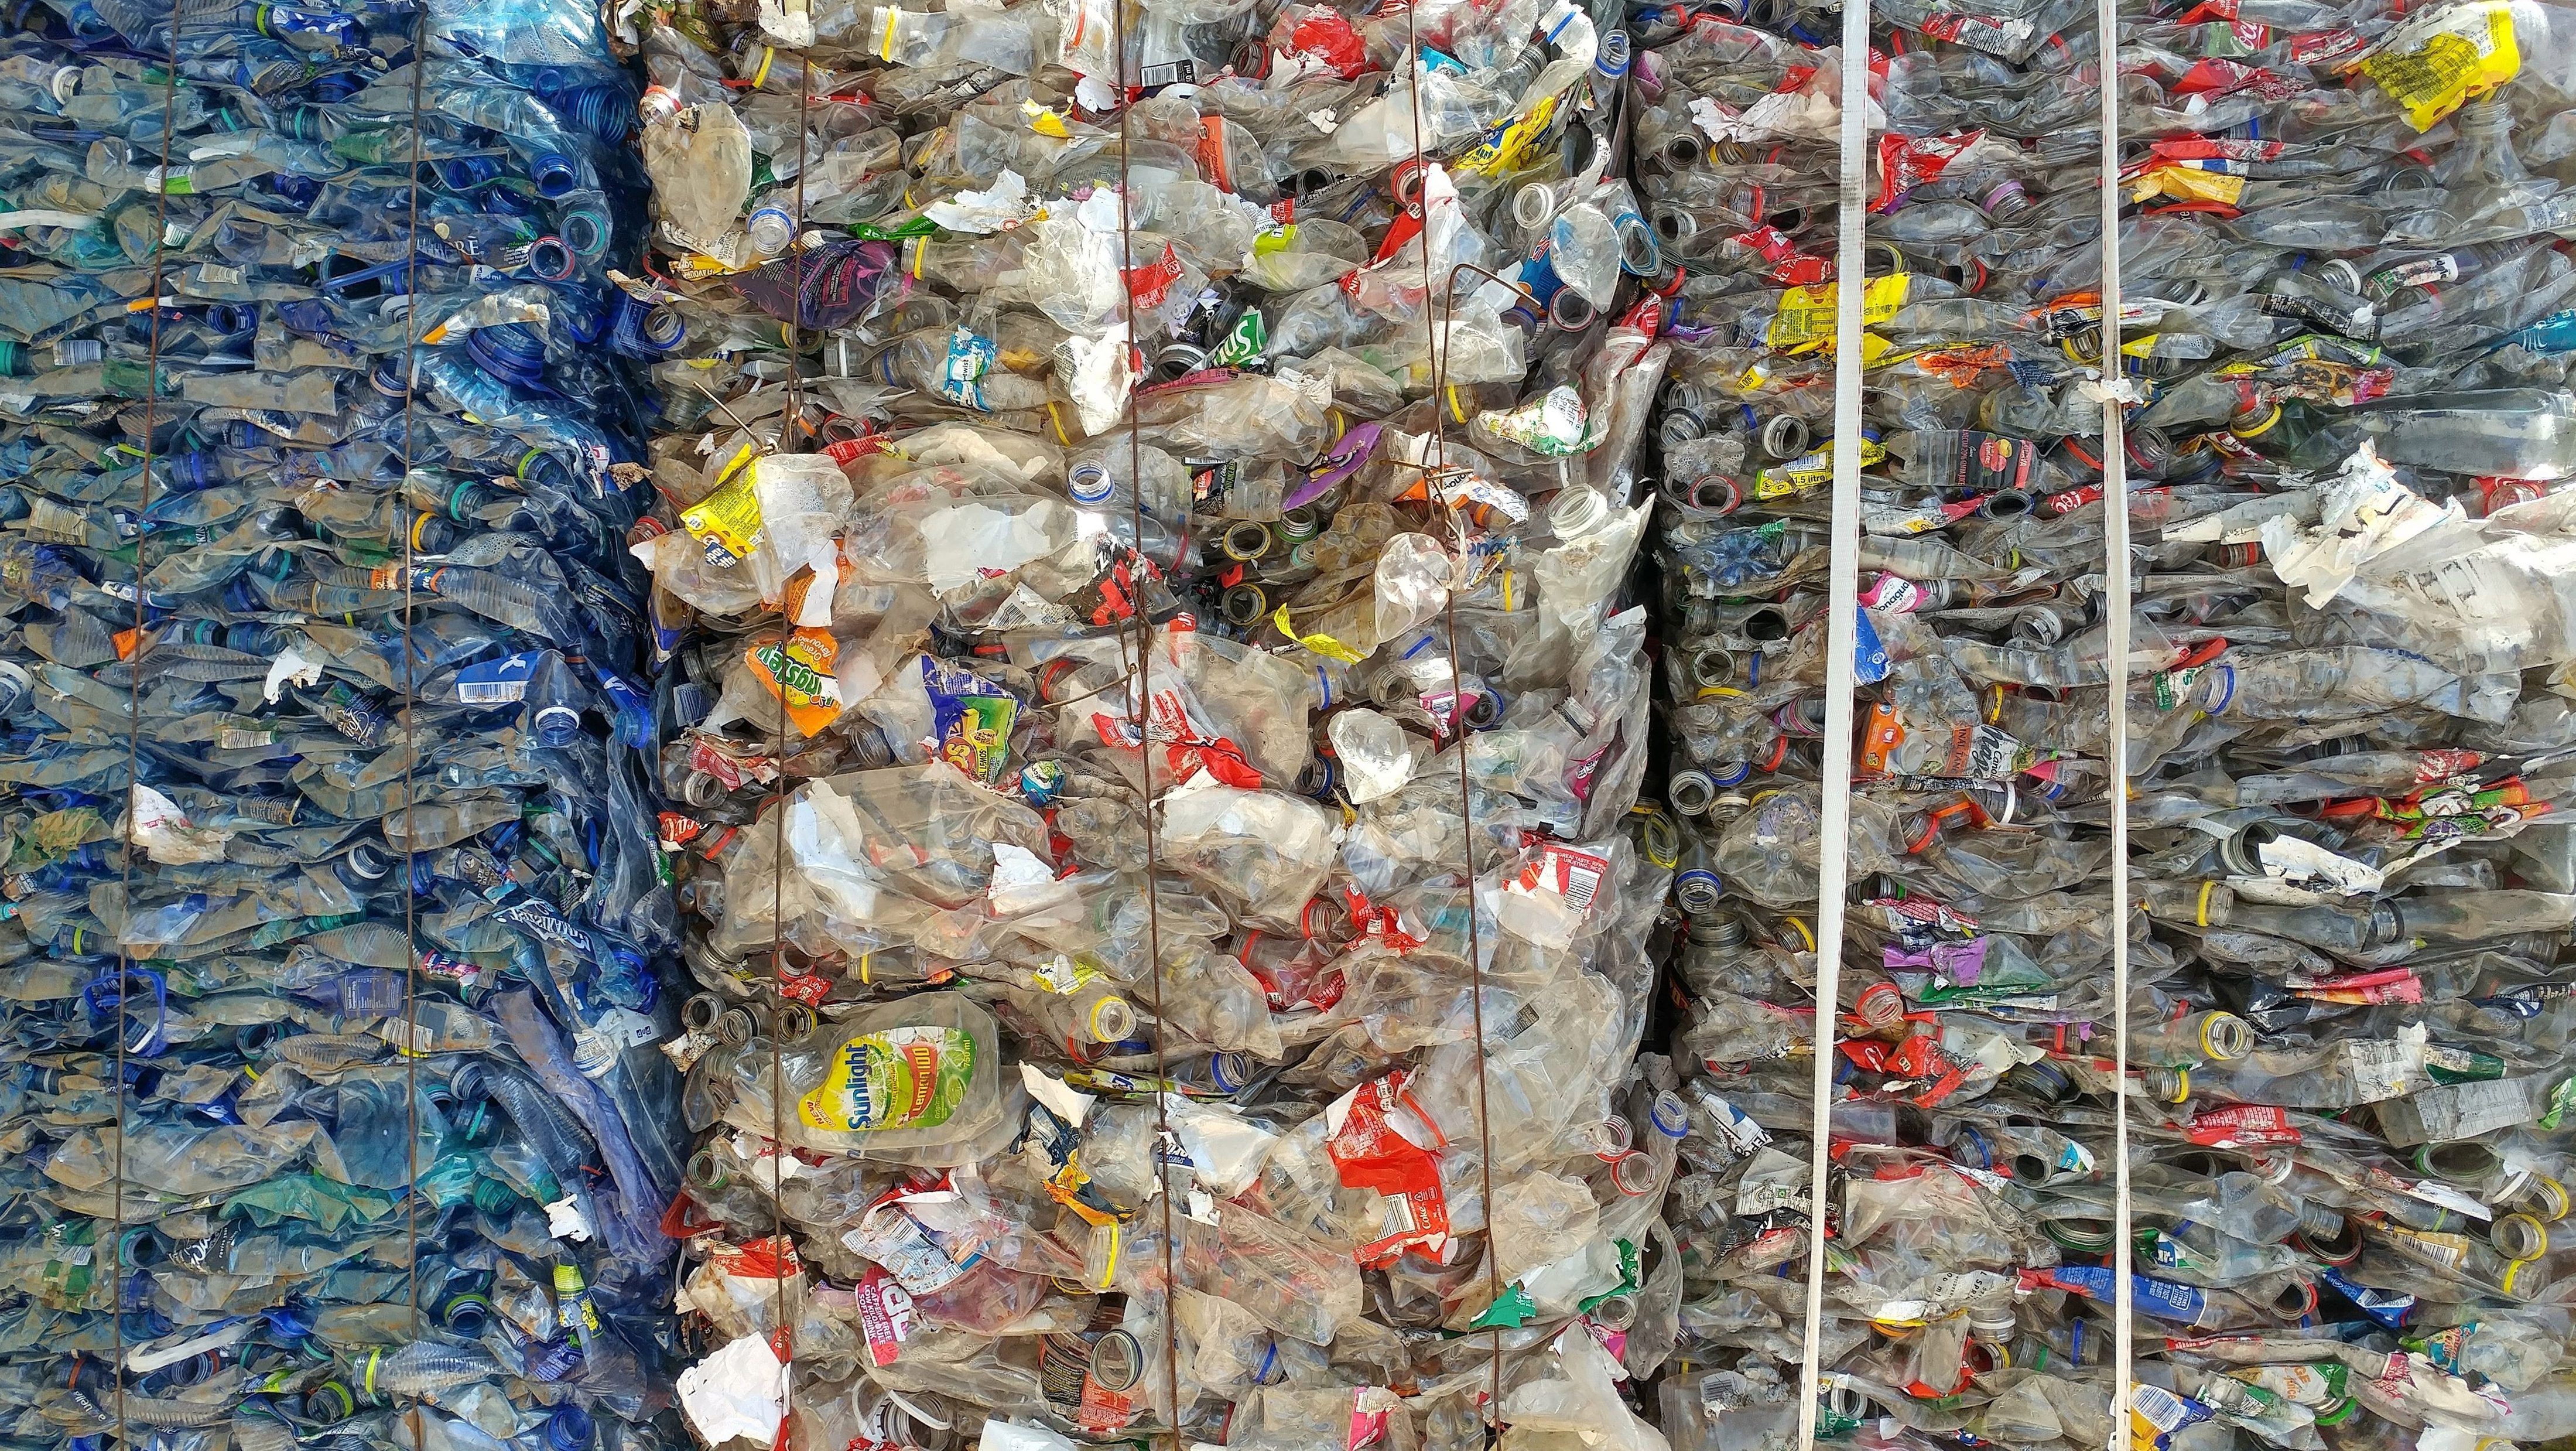 Now that China won't take it, the world will have an extra 111 million metric tons of plastic to deal with by 2030.